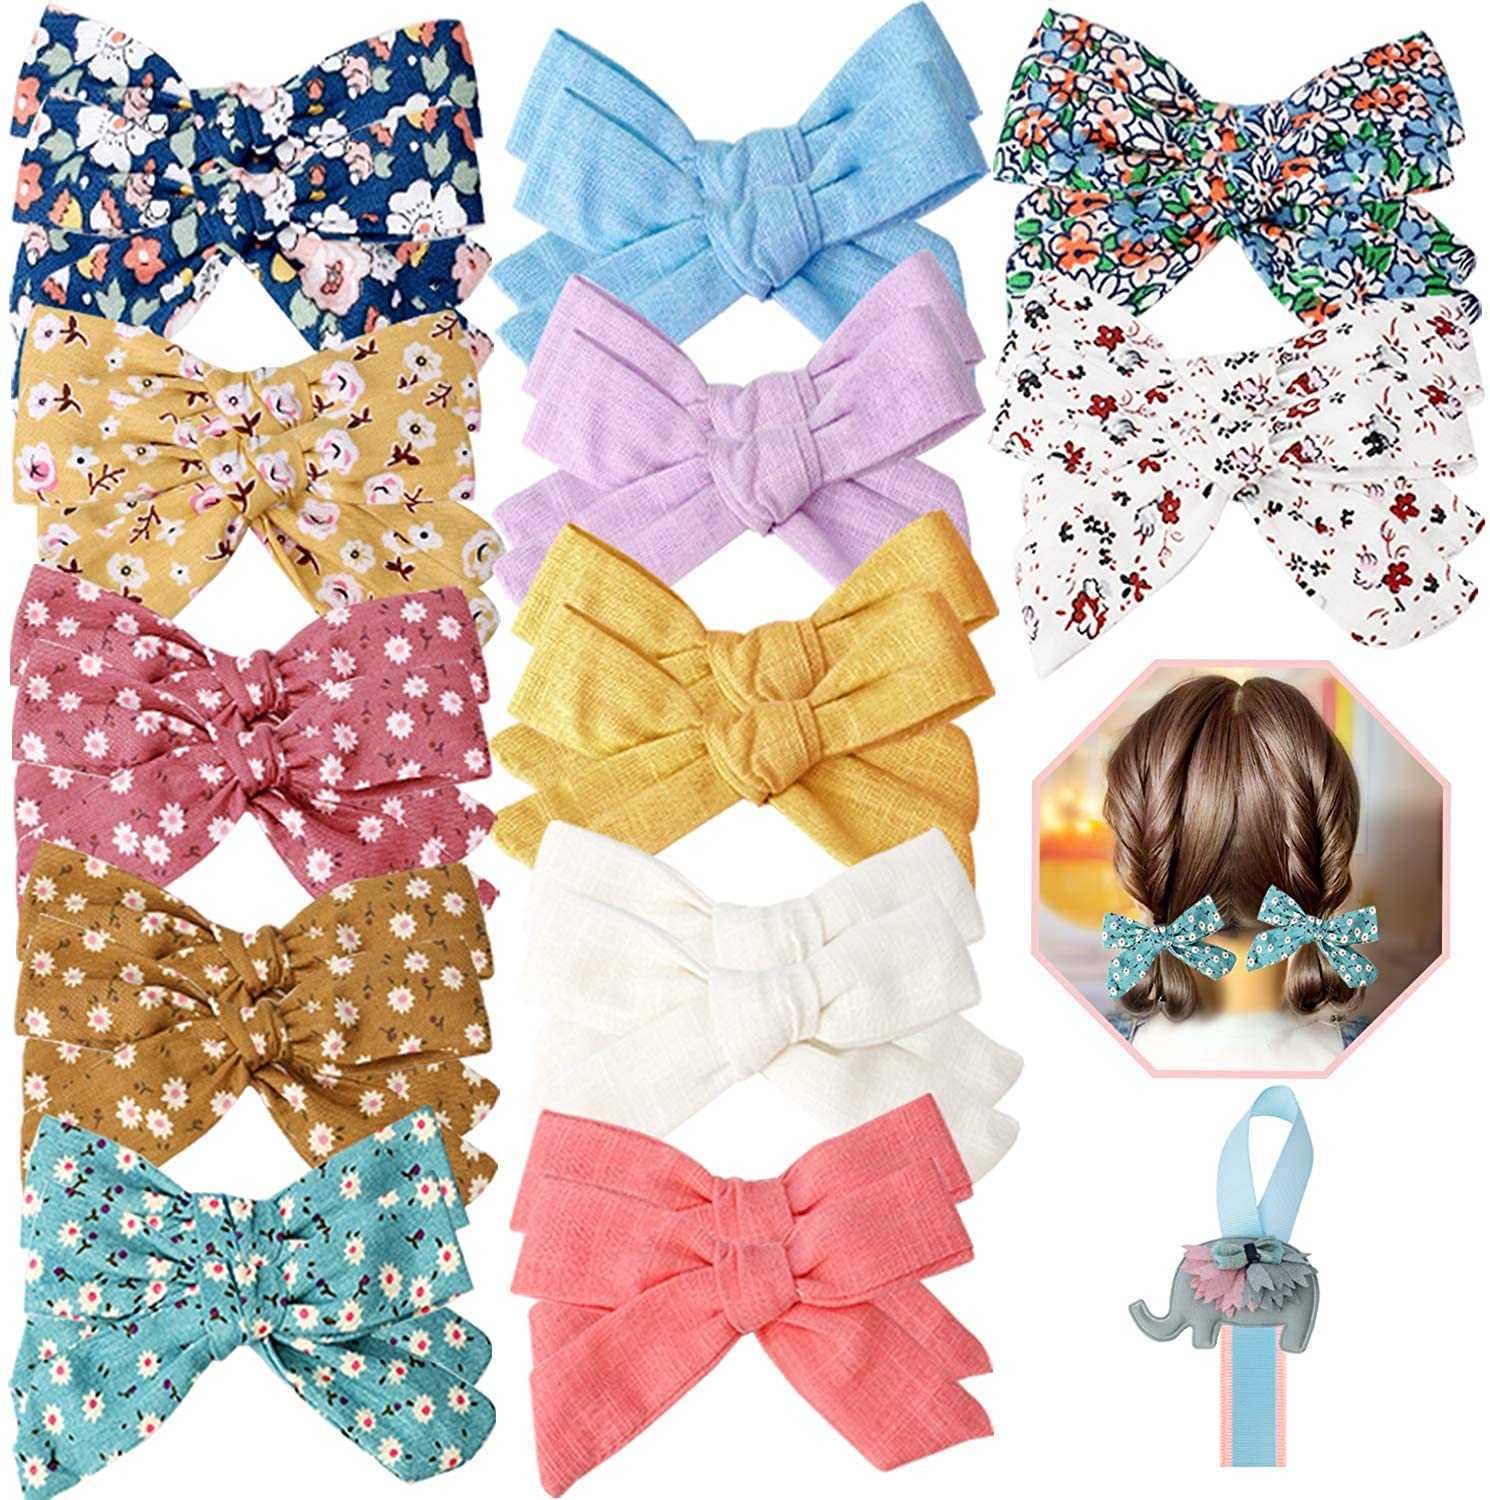 Baby Girls Hair Bows Clips 24 Pcs 3.9 inch Fully Lined Tiny Barrettes Accessories for Fine Hair Infants Toddler Kids